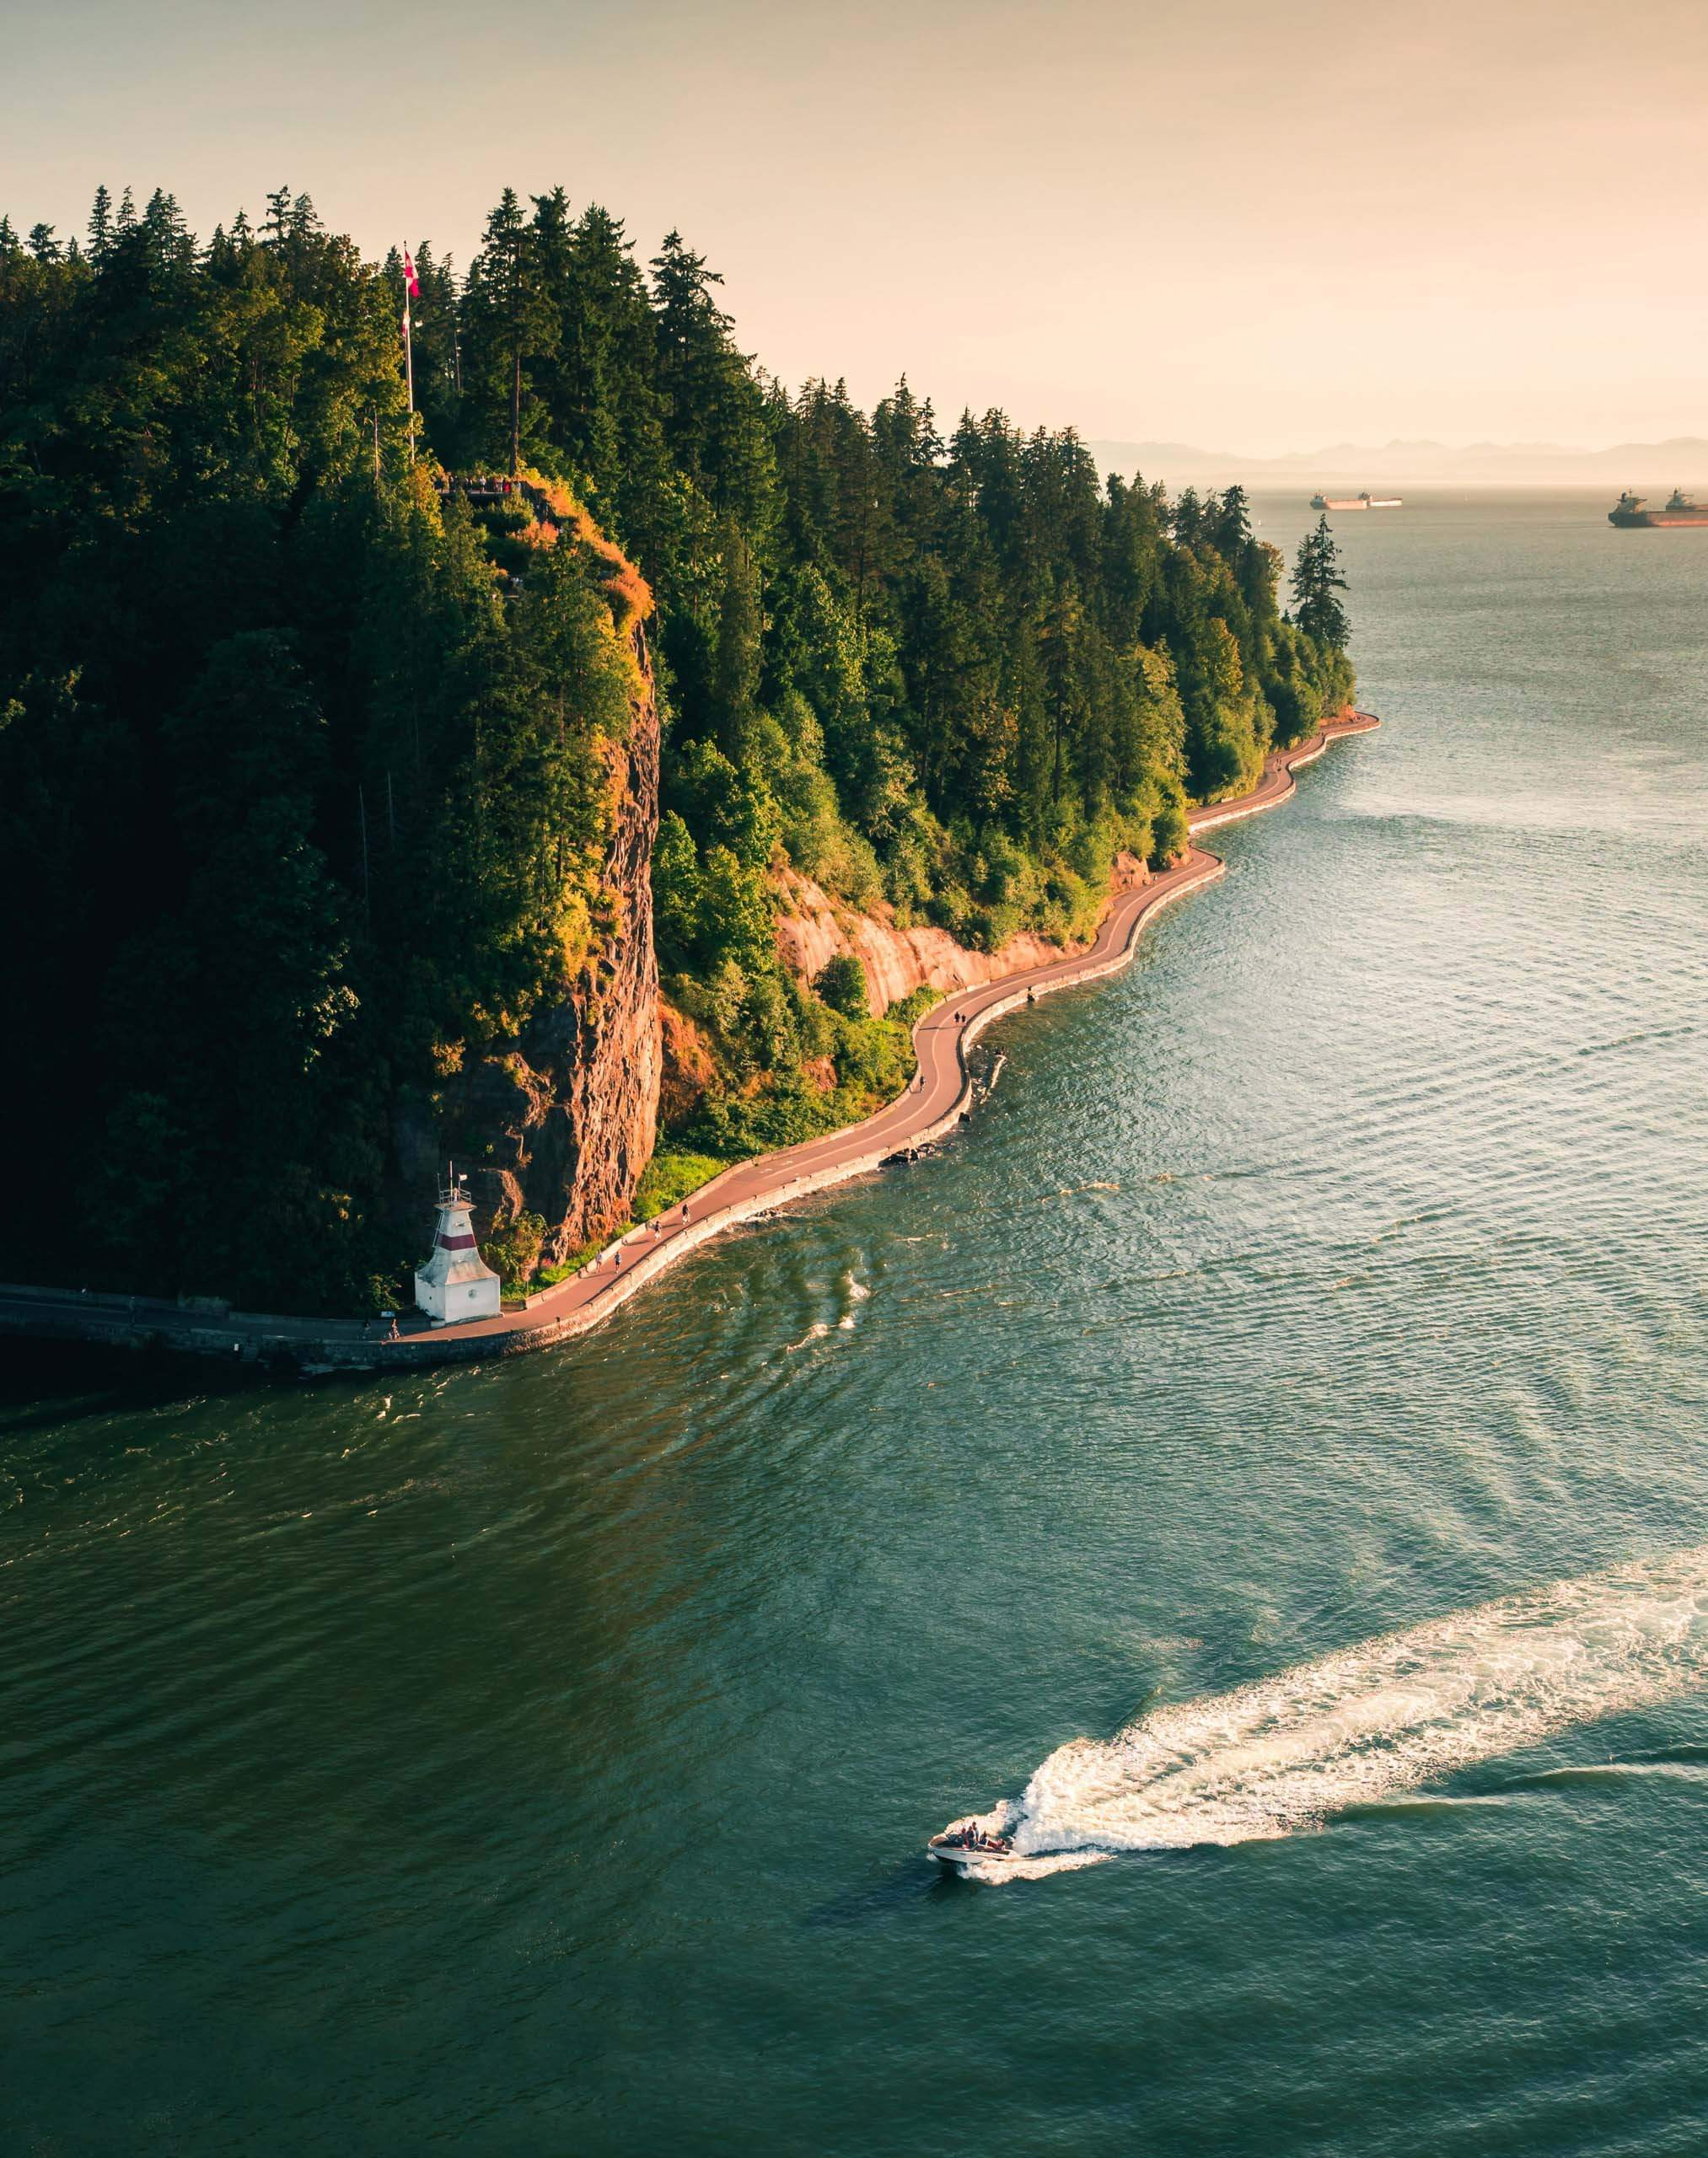 The seawall along Stanley Park. Photo by Luc Tribolet on Unsplash